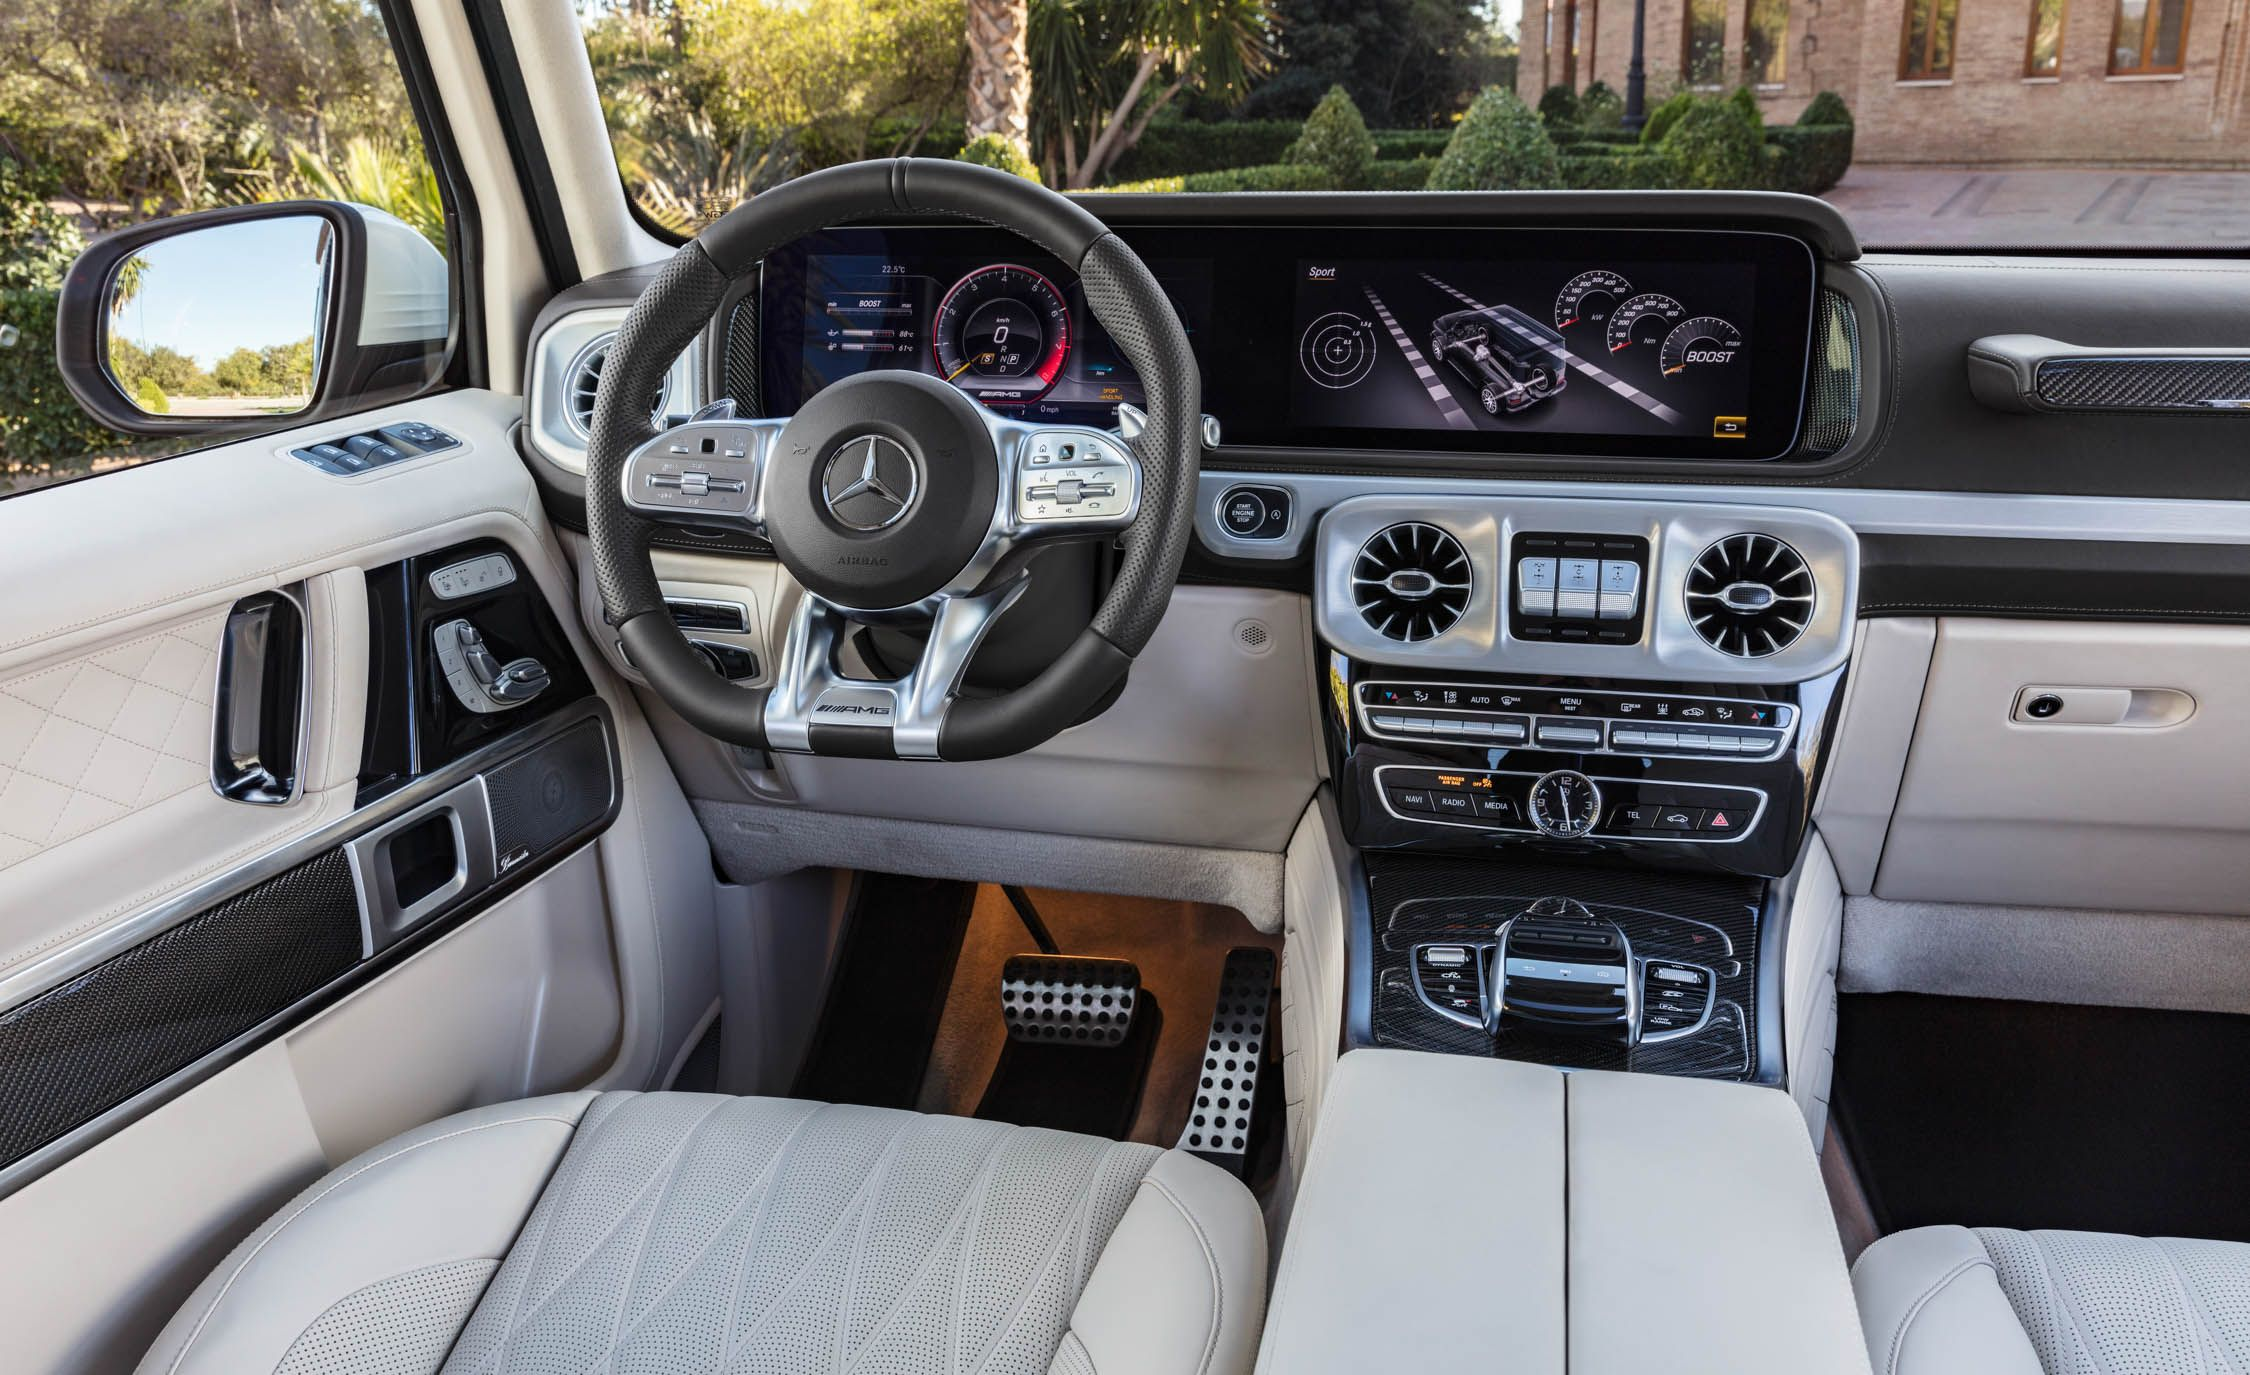 2019 Mercedes Amg G63 G65 4matic Reviews Price Photos And Specs Car Driver